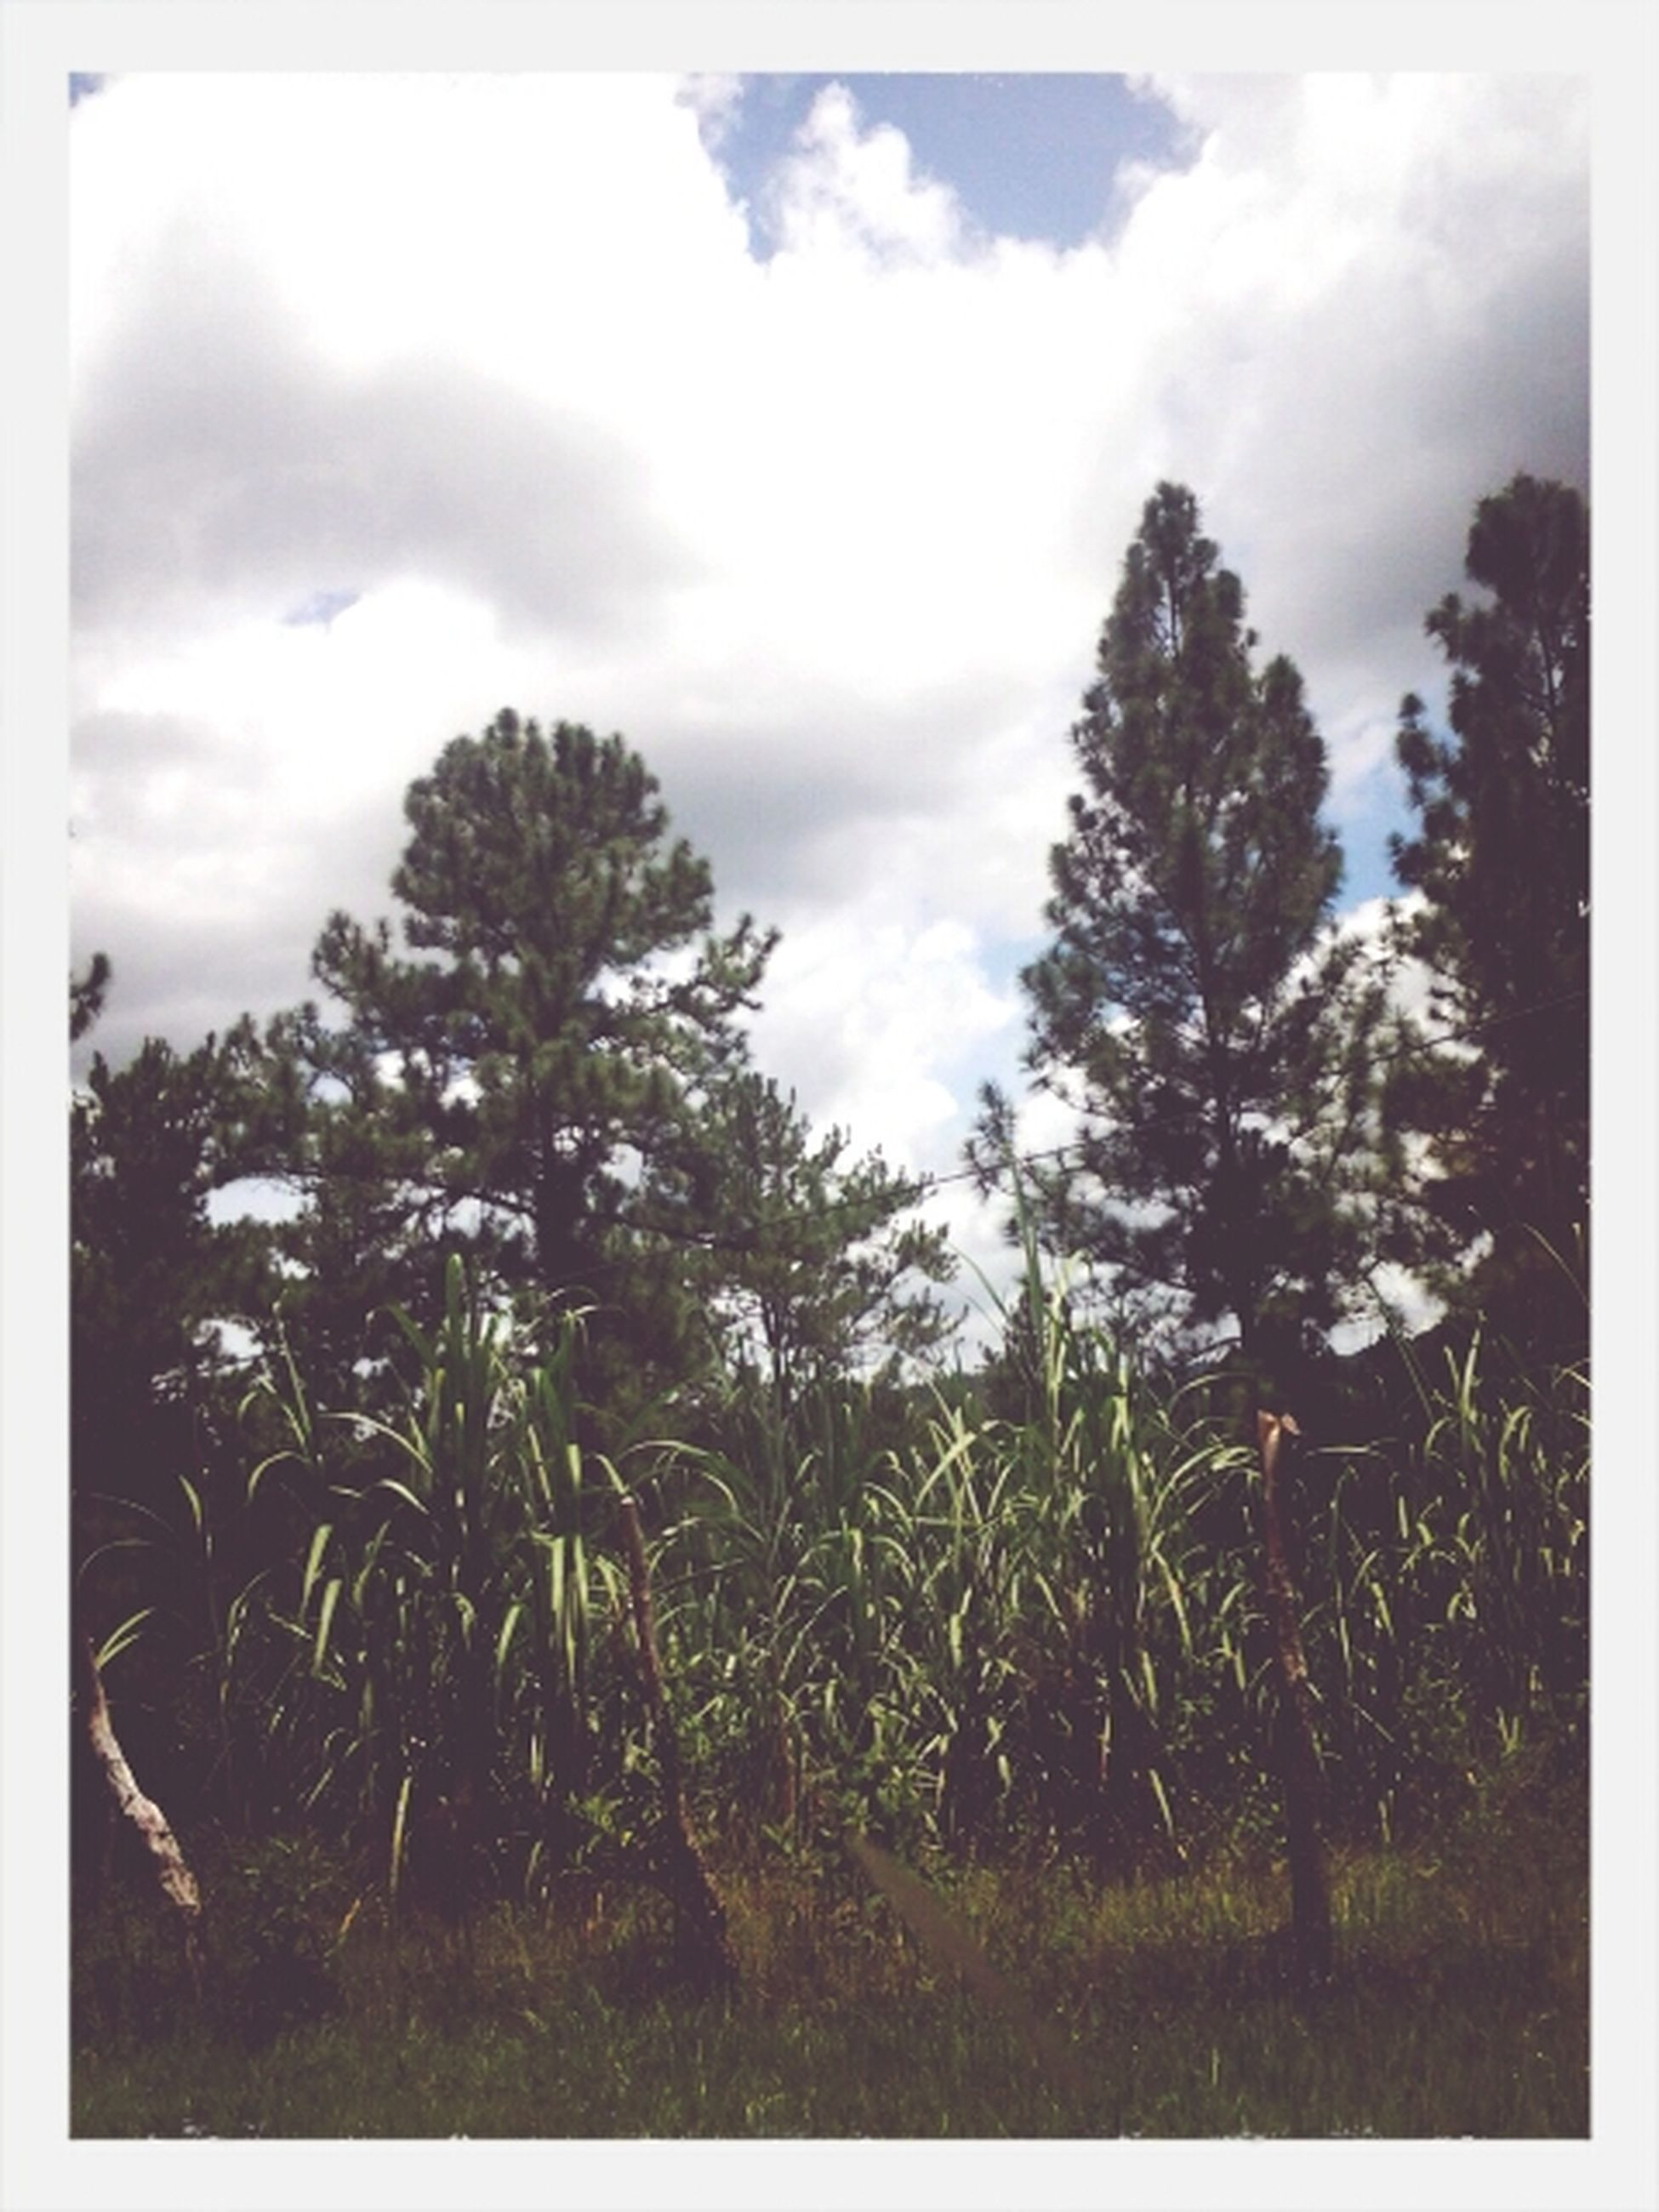 nature, growth, landscape, sky, plant, vegetation, field, grass, tranquility, no people, outdoors, tree, day, beauty in nature